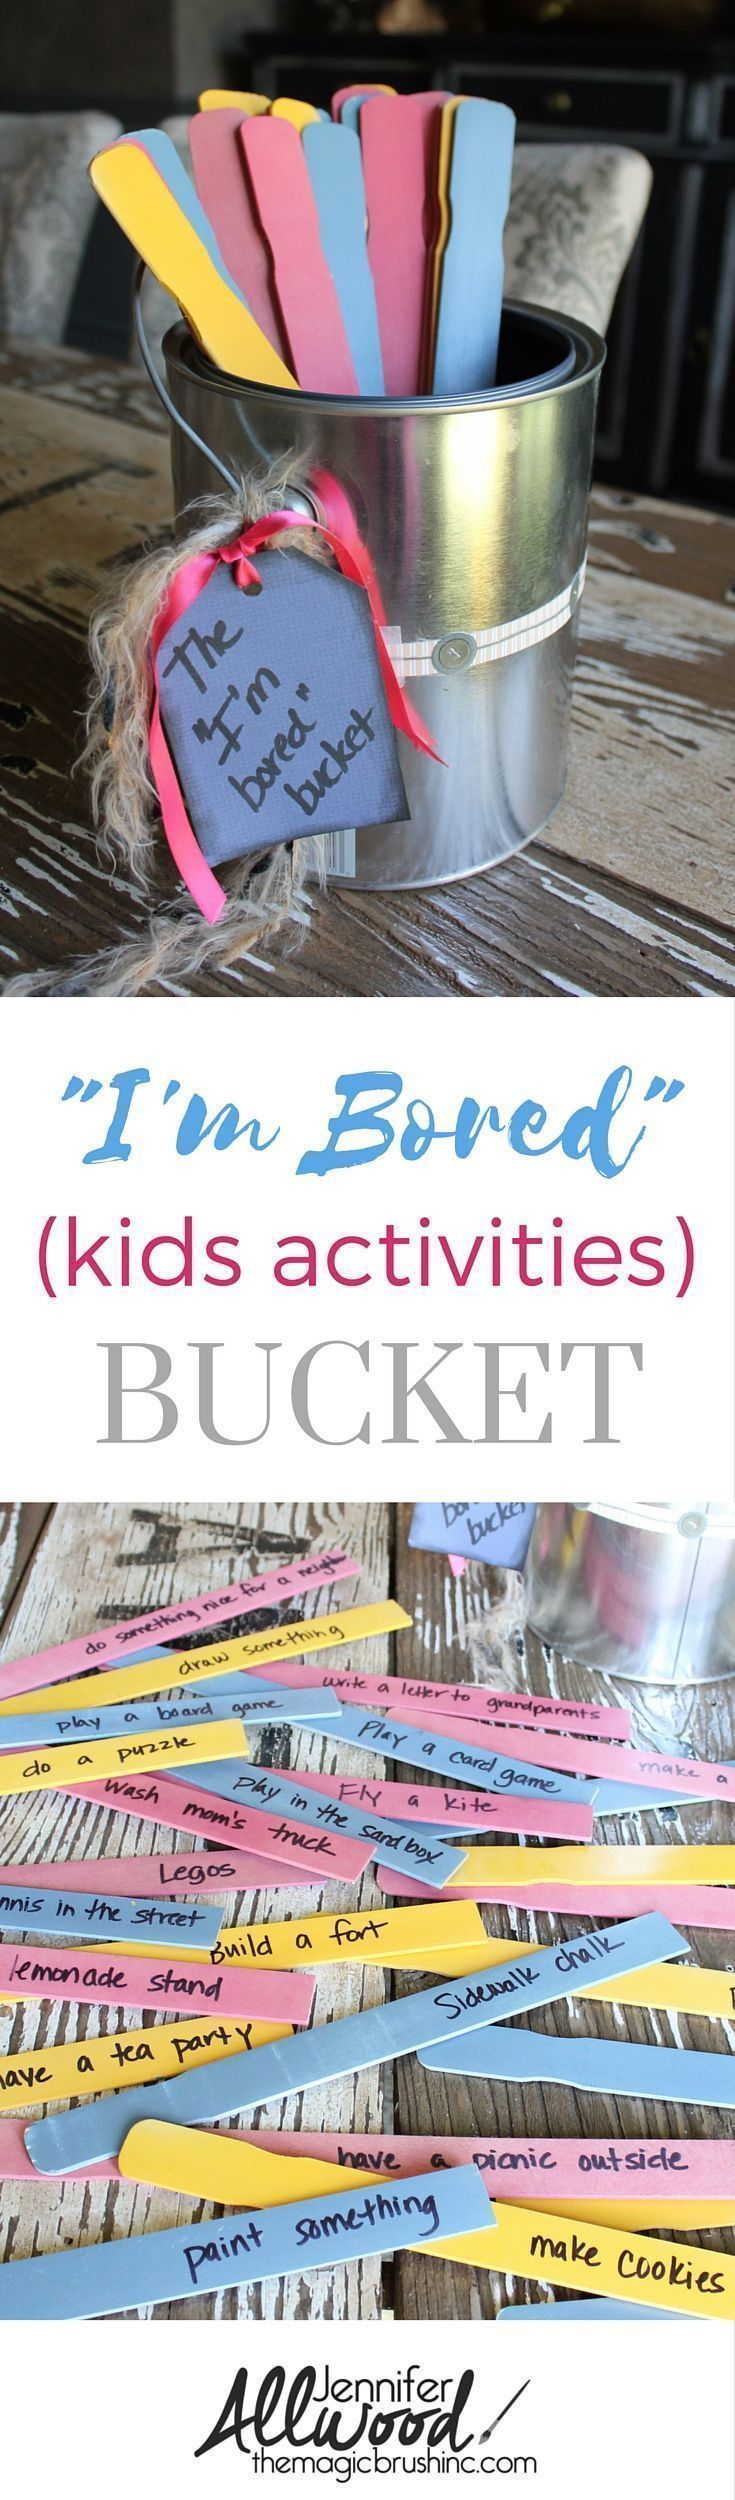 DIY Bored Bucket with tons of kids activities to fight boredrom